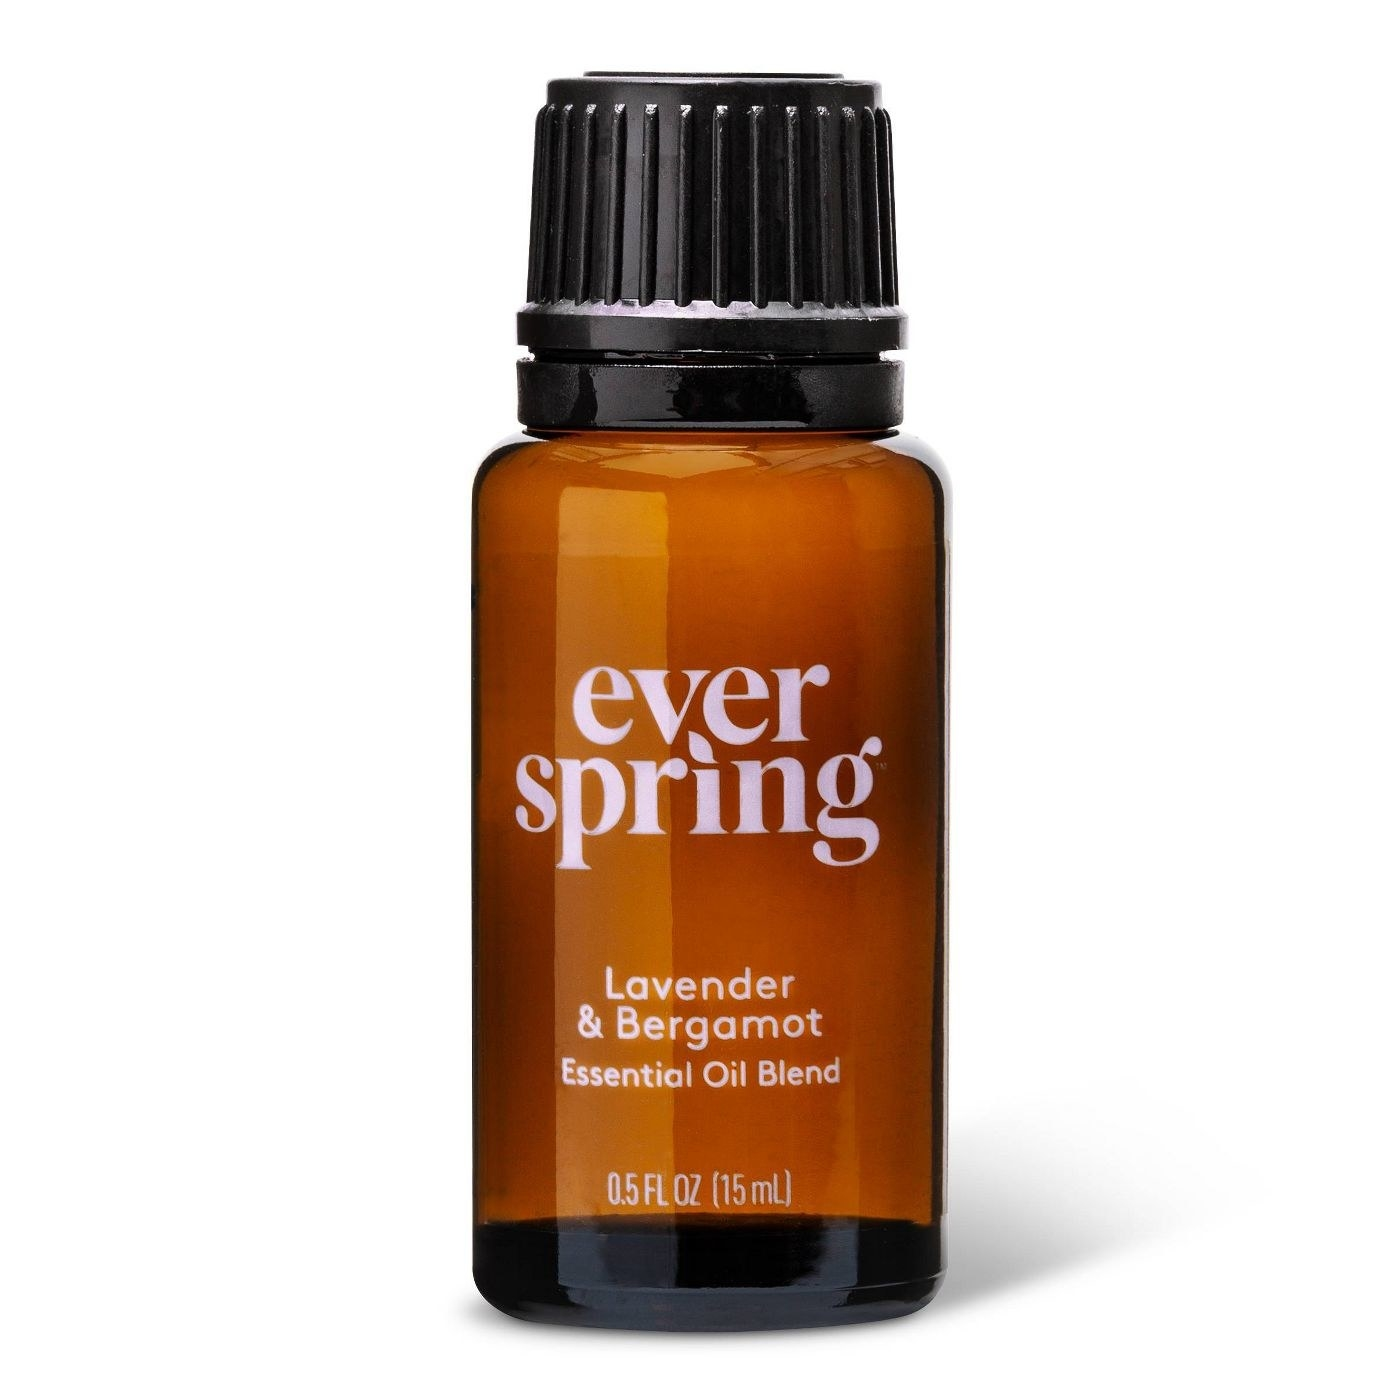 The essential oil blend